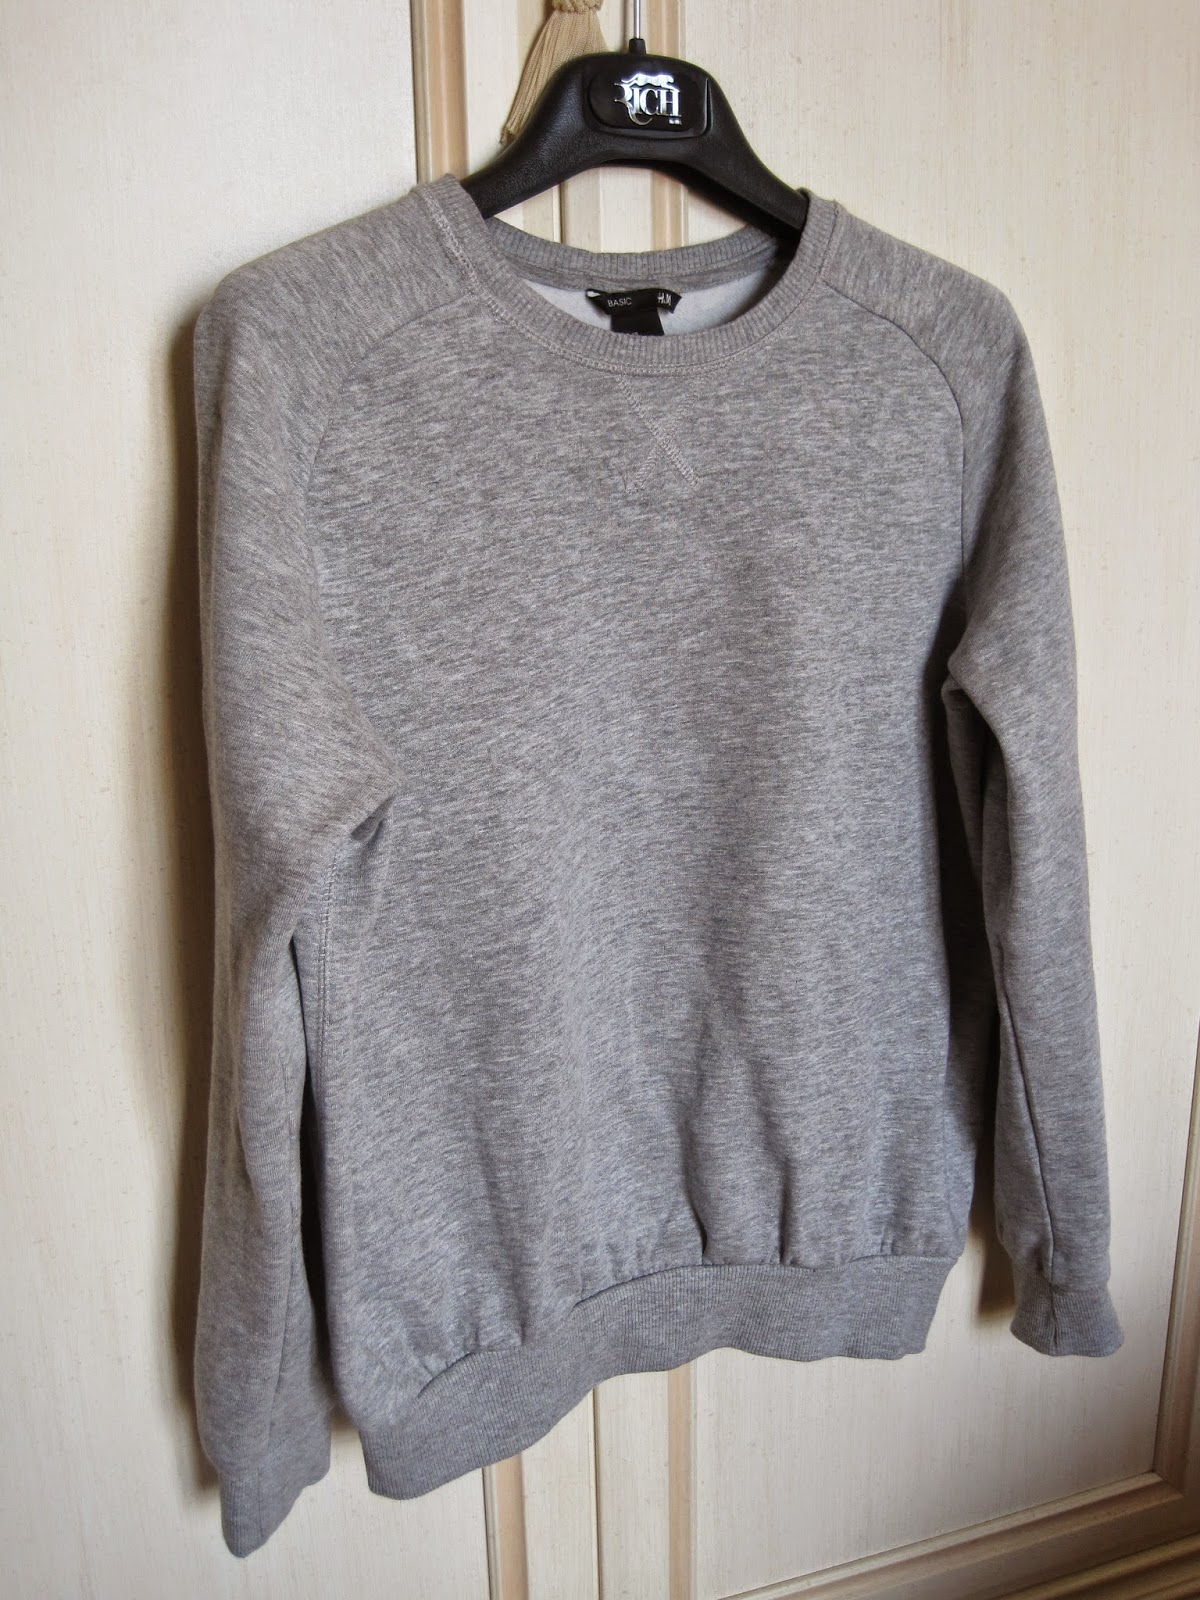 h&m, sweatshirt, shopping, sales